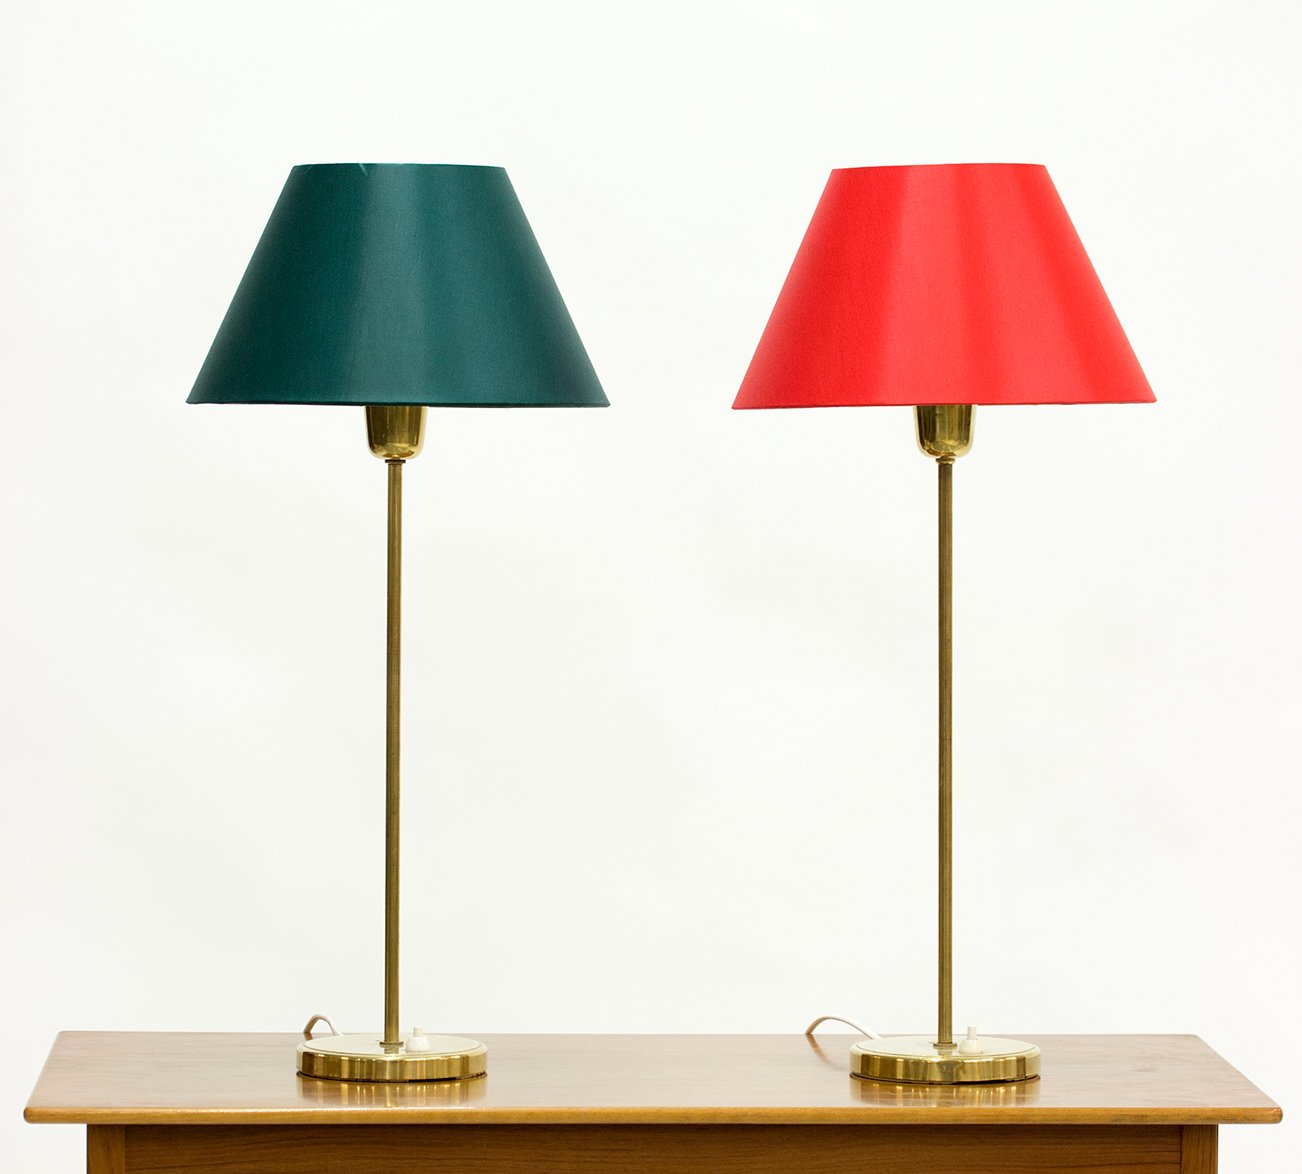 brass table lamps from asea 1950s set of 2 for sale at. Black Bedroom Furniture Sets. Home Design Ideas